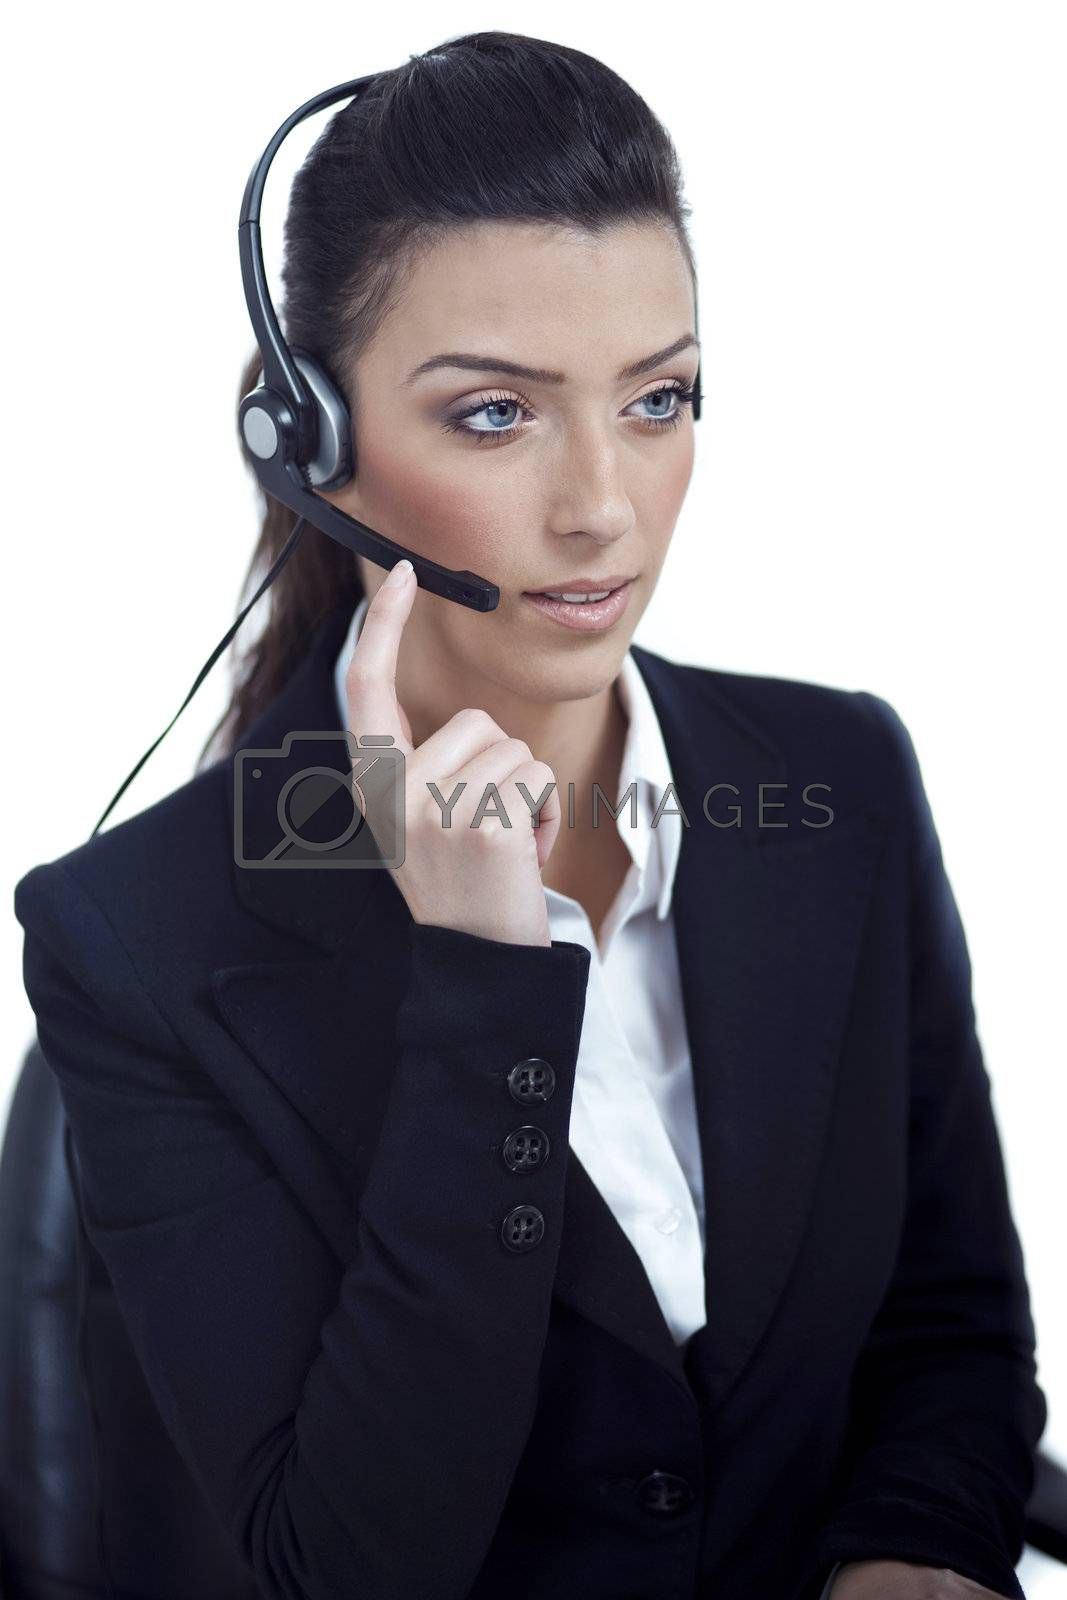 Royalty free image of Beautiful call center telephone woman wearing headset by get4net